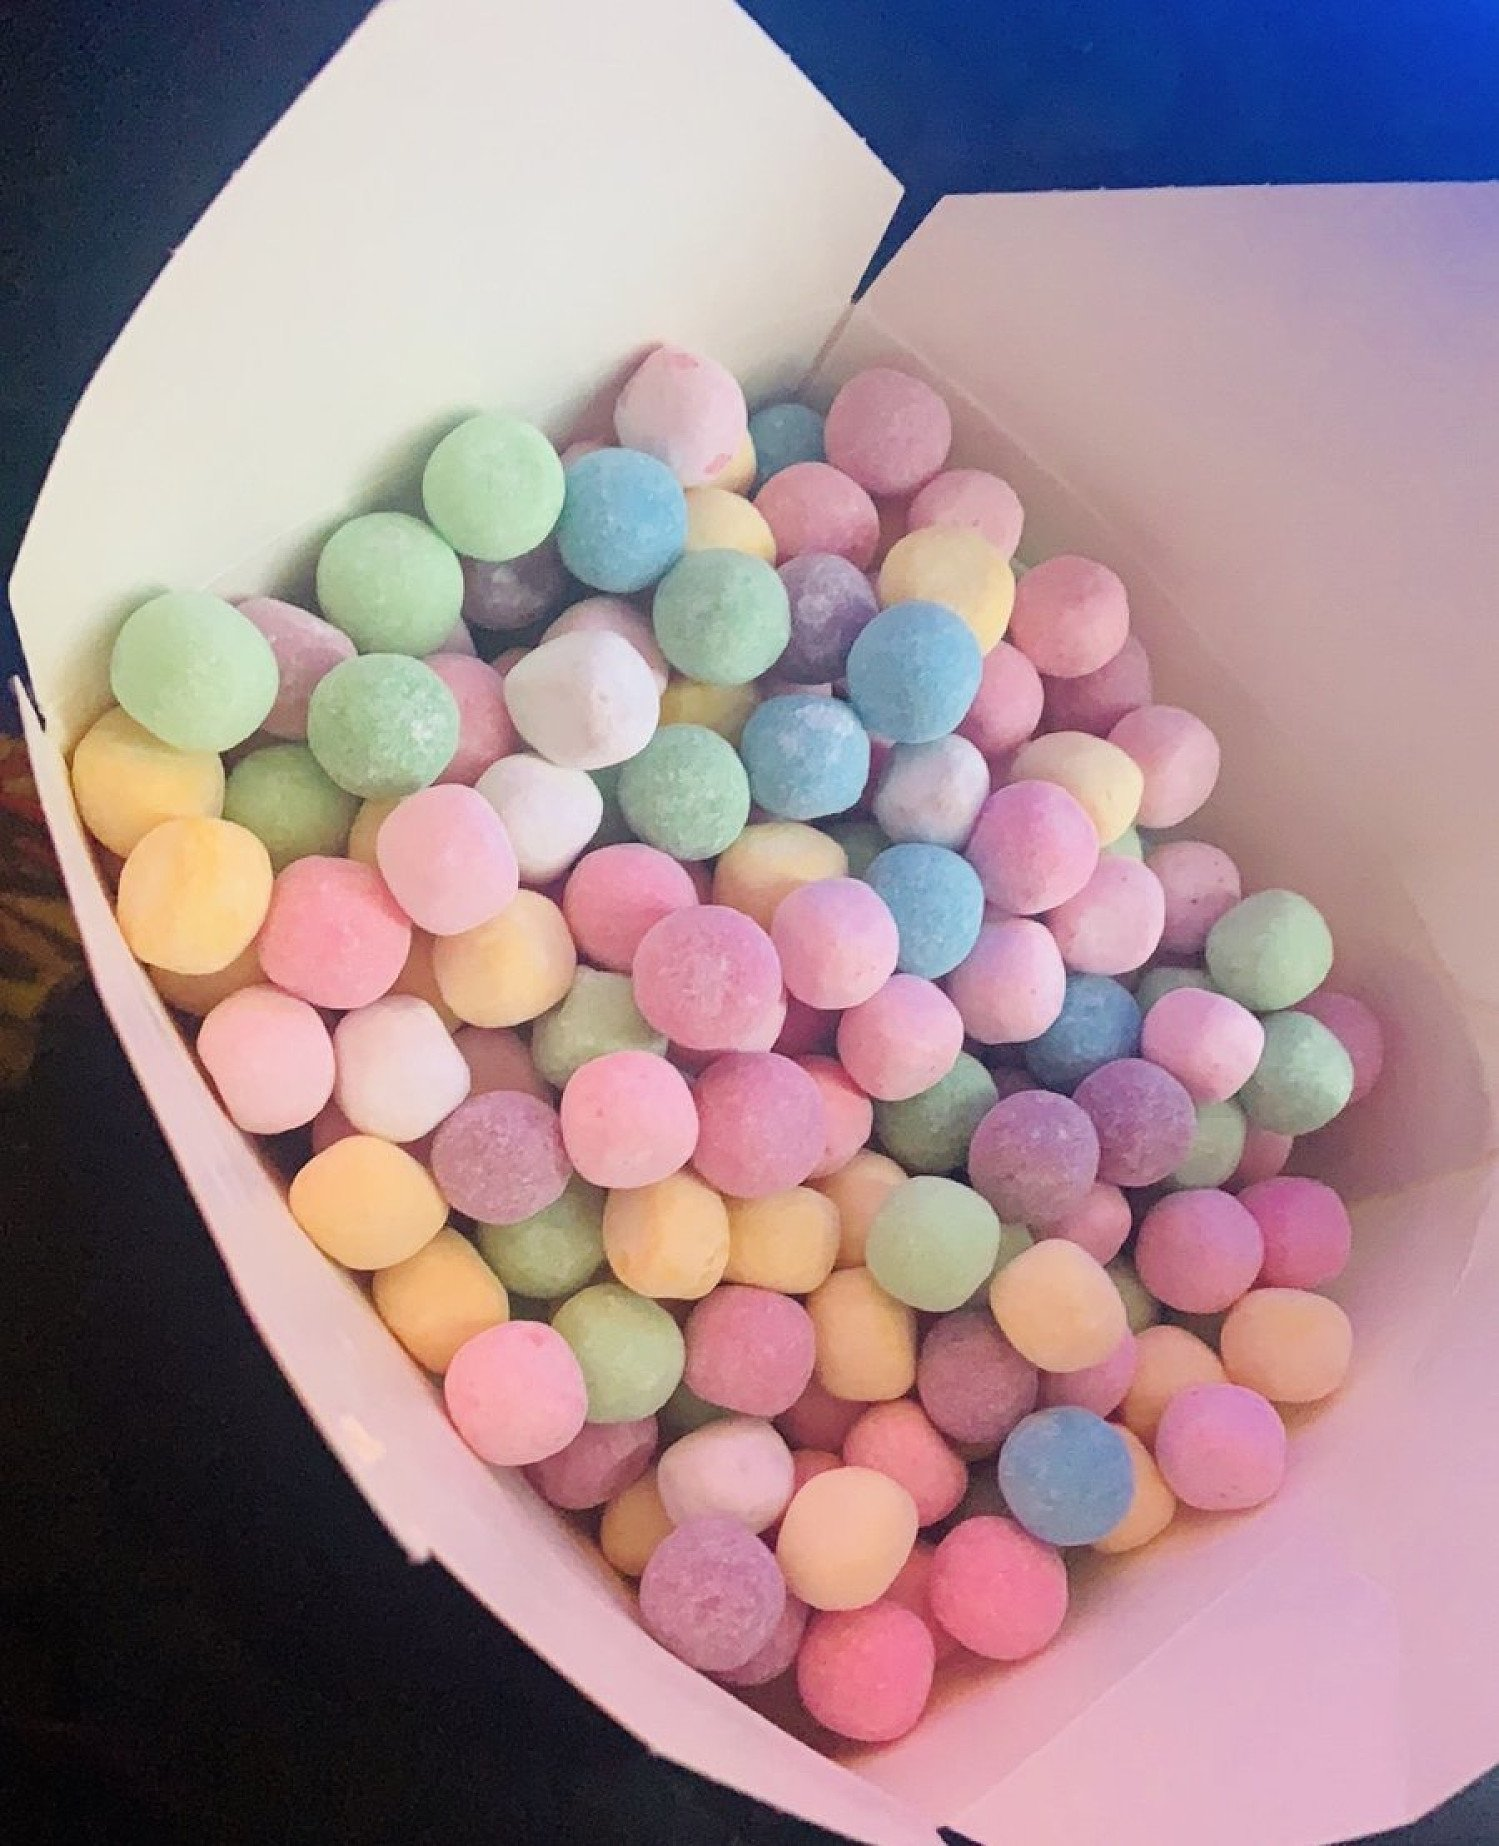 Chewy Bonbons